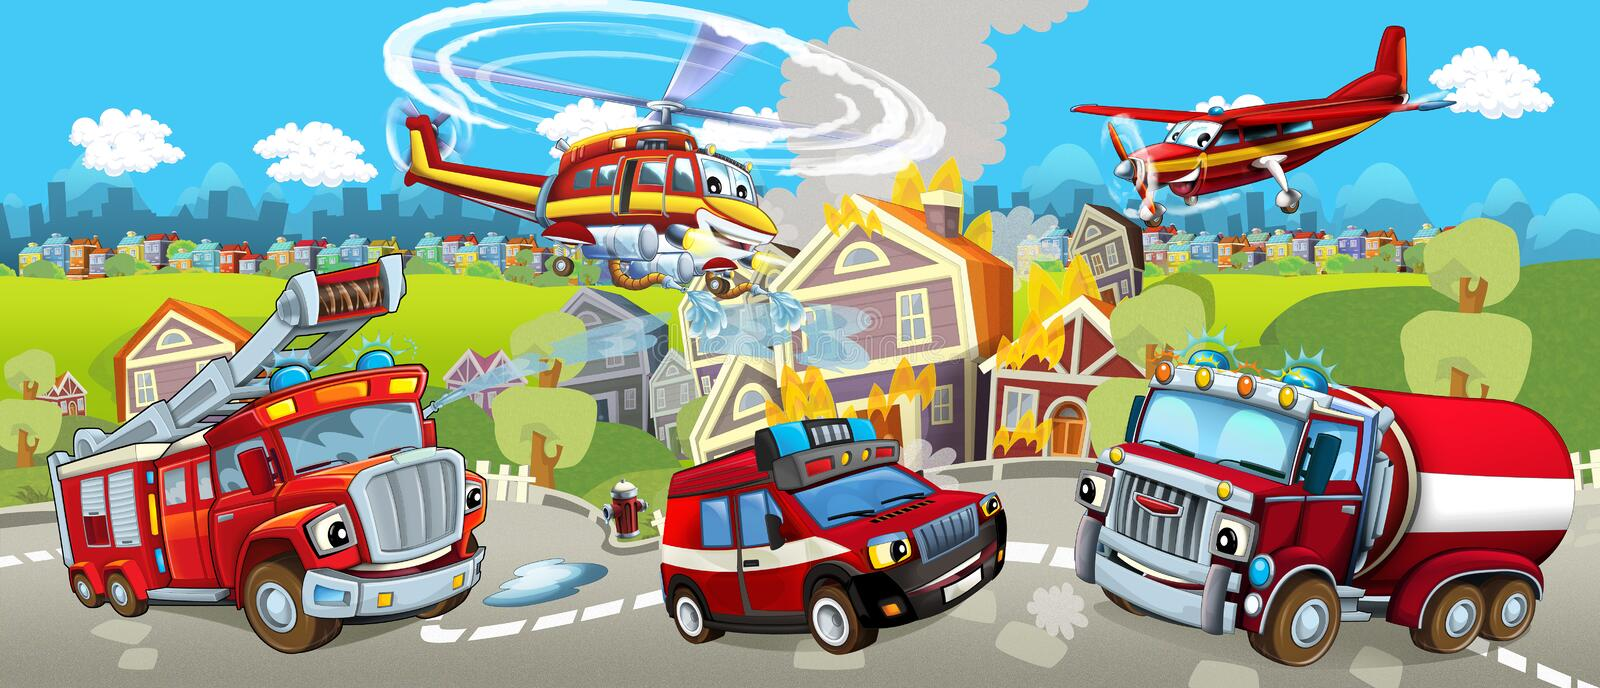 Cartoon stage with different machines for firefighting colorful and cheerful scene. Beautiful and colorful illustration for the children - for different usage stock illustration